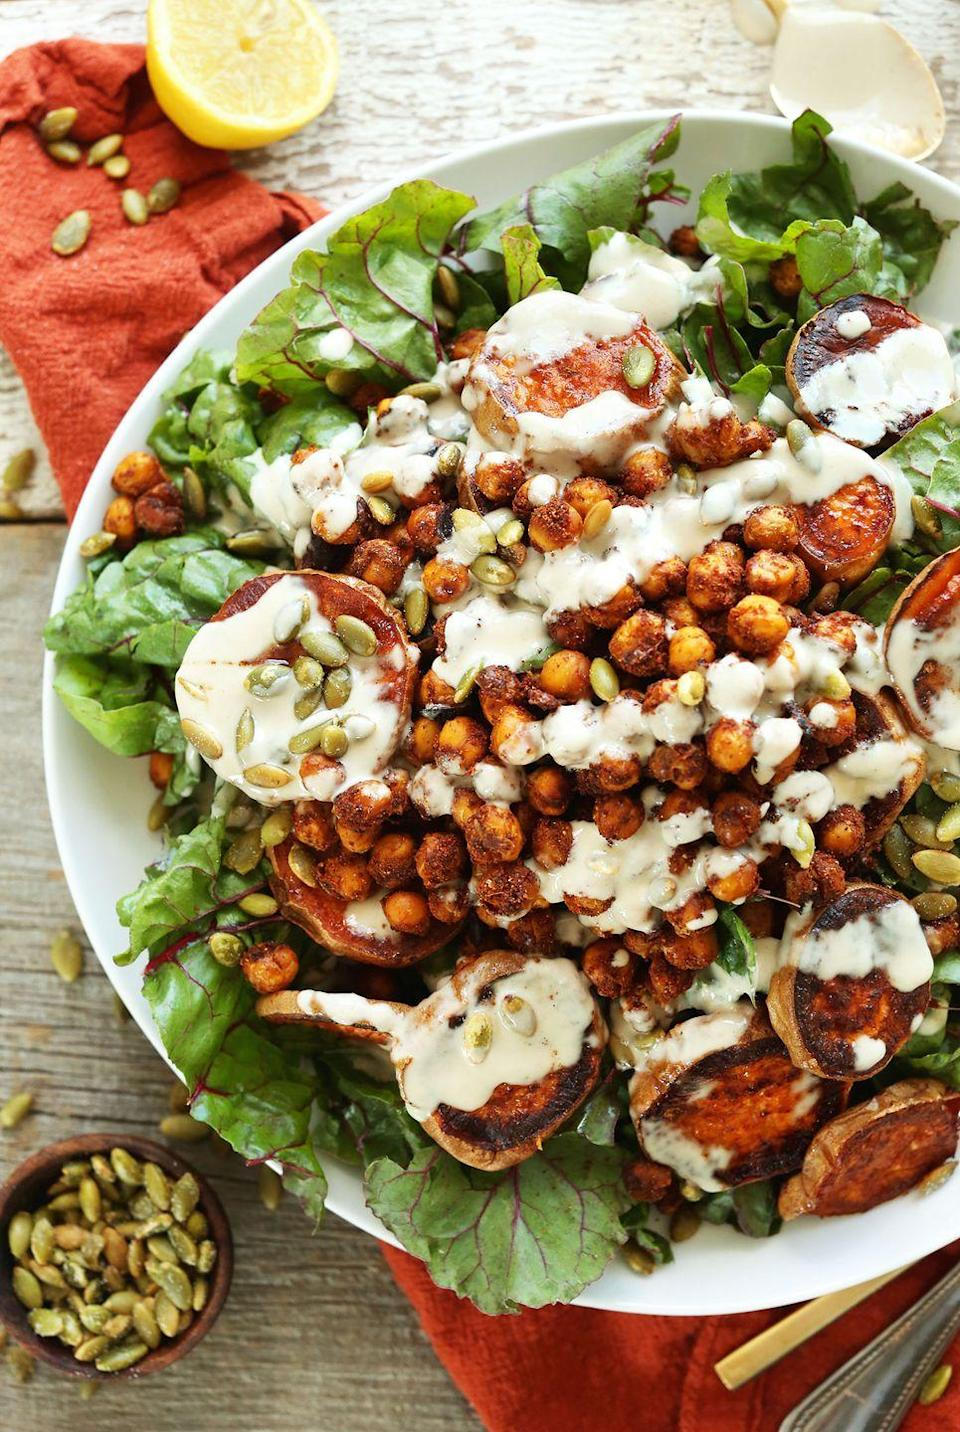 """<p>This easy, 3-ingredient tahini dressing helps bring the spiced chickpeas and roasted sweet potatoes together for a delicious fall salad. </p><p><strong>Get the recipe at <a href=""""https://minimalistbaker.com/roasted-sweet-potato-chickpea-salad/"""" rel=""""nofollow noopener"""" target=""""_blank"""" data-ylk=""""slk:Minimalist Baker"""" class=""""link rapid-noclick-resp"""">Minimalist Baker</a>. </strong></p><p><a class=""""link rapid-noclick-resp"""" href=""""https://go.redirectingat.com?id=74968X1596630&url=https%3A%2F%2Fwww.walmart.com%2Fsearch%2F%3Fquery%3Dmeasuring%2Bspoons&sref=https%3A%2F%2Fwww.thepioneerwoman.com%2Ffood-cooking%2Fmeals-menus%2Fg36806222%2Ffall-salad-recipes%2F"""" rel=""""nofollow noopener"""" target=""""_blank"""" data-ylk=""""slk:SHOP MEASURING SPOONS"""">SHOP MEASURING SPOONS</a></p>"""